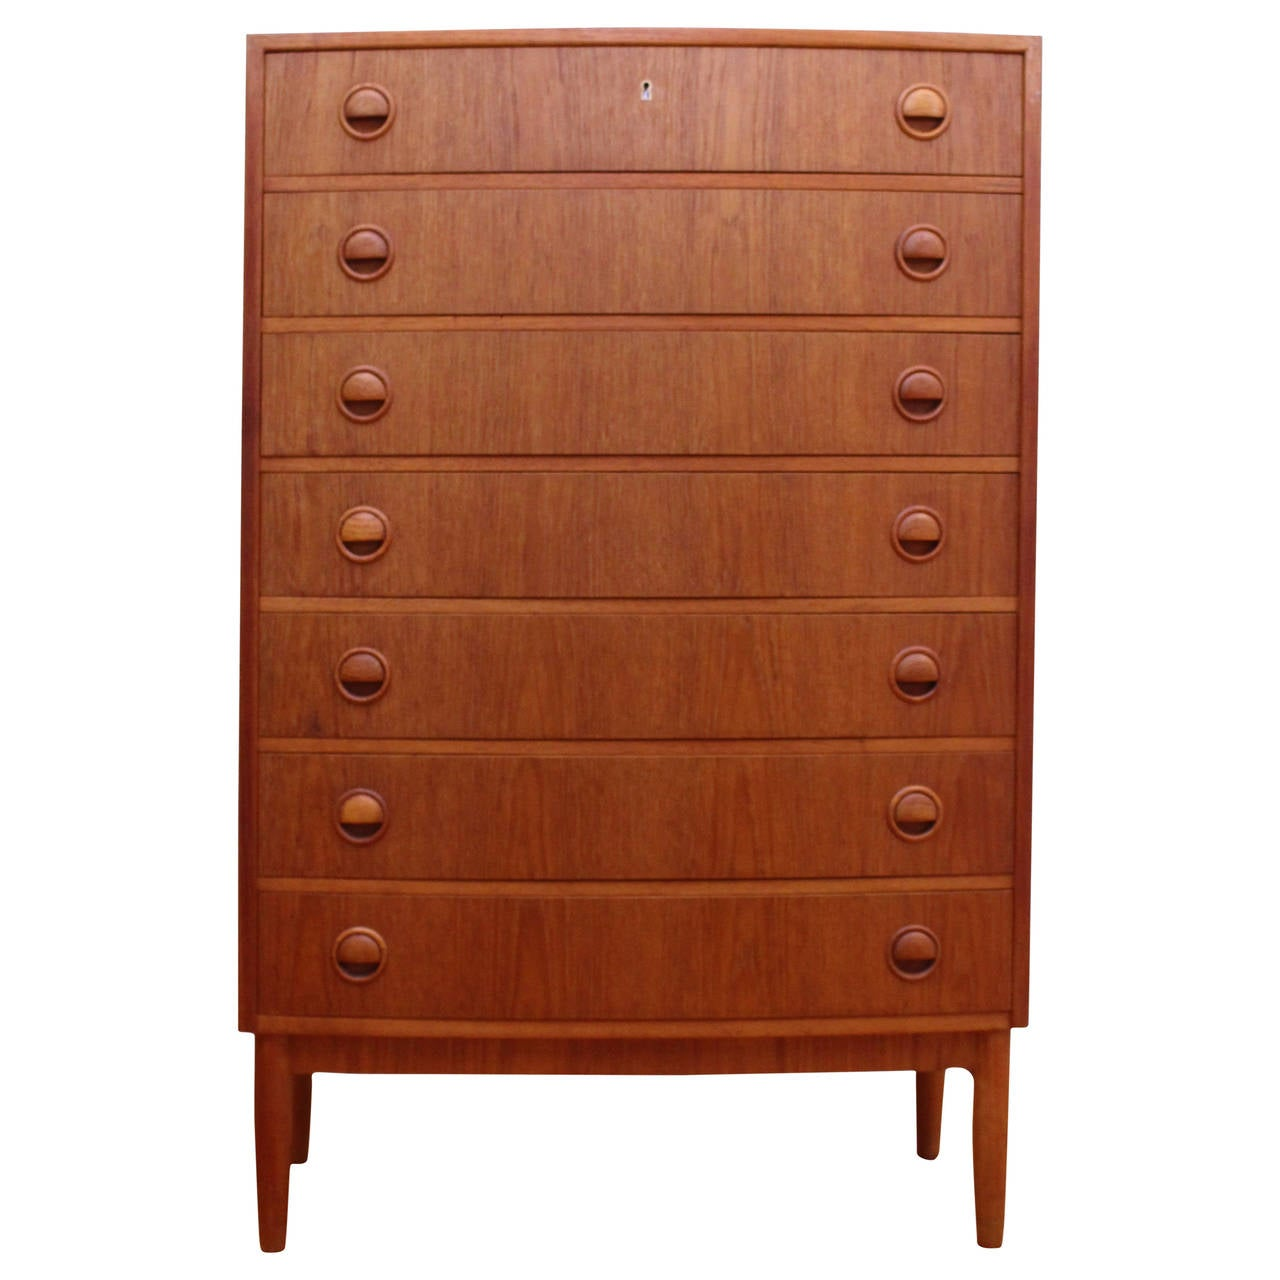 Danish mid century modern teak chest of drawers at stdibs